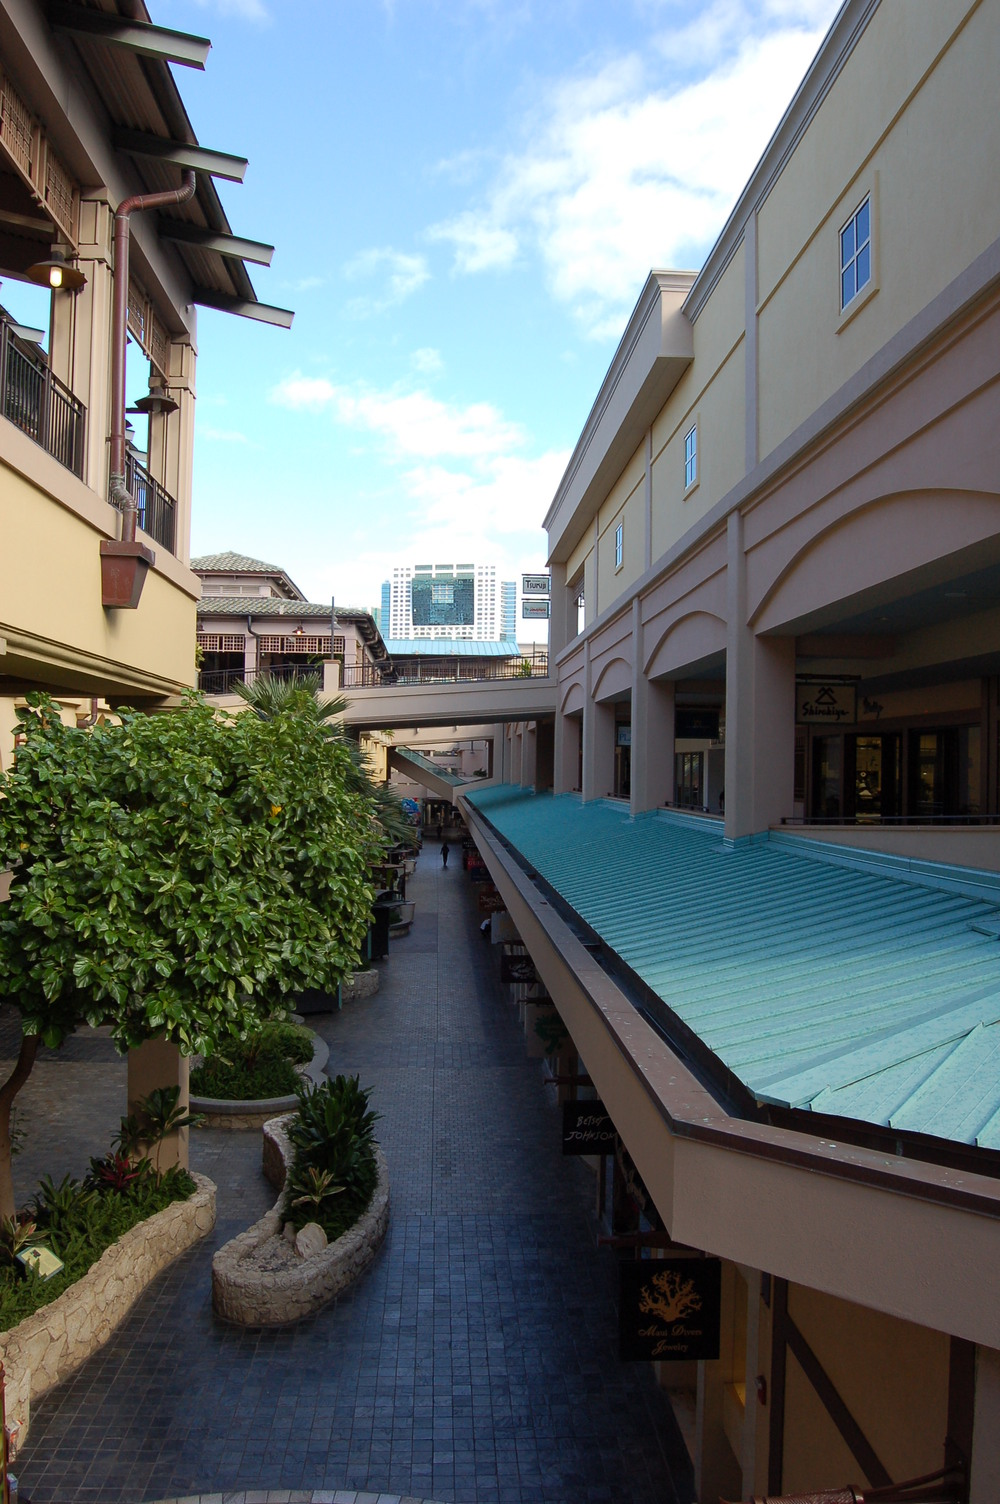 ala-moana-shopping-center-retail-rf-stearns-structural-steel-construction-2.jpg